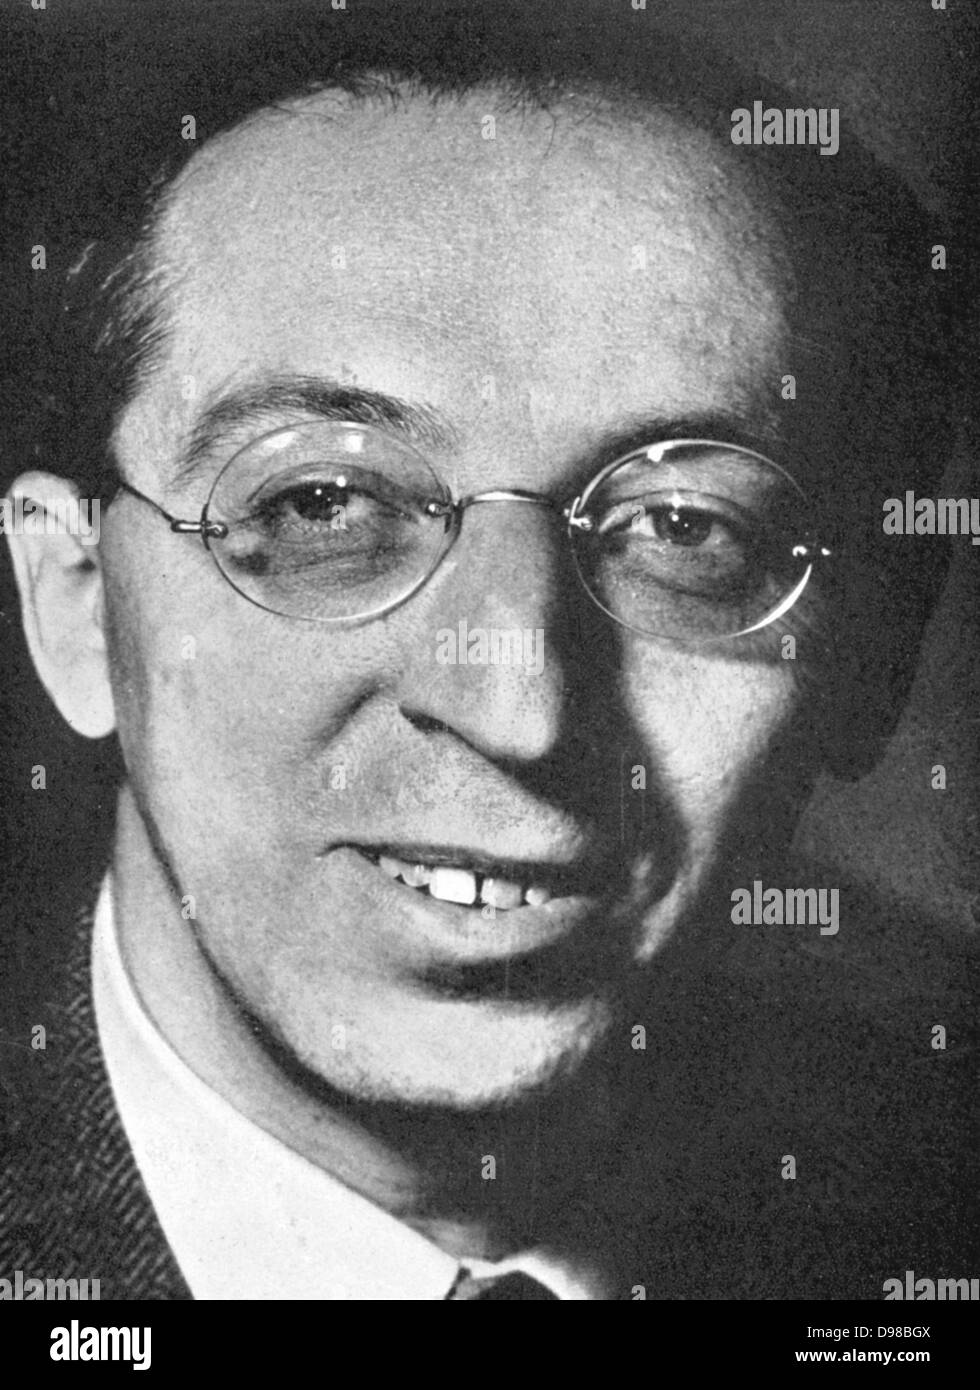 Aaron Copland (1900-1990) American composer and pianist. - Stock Image